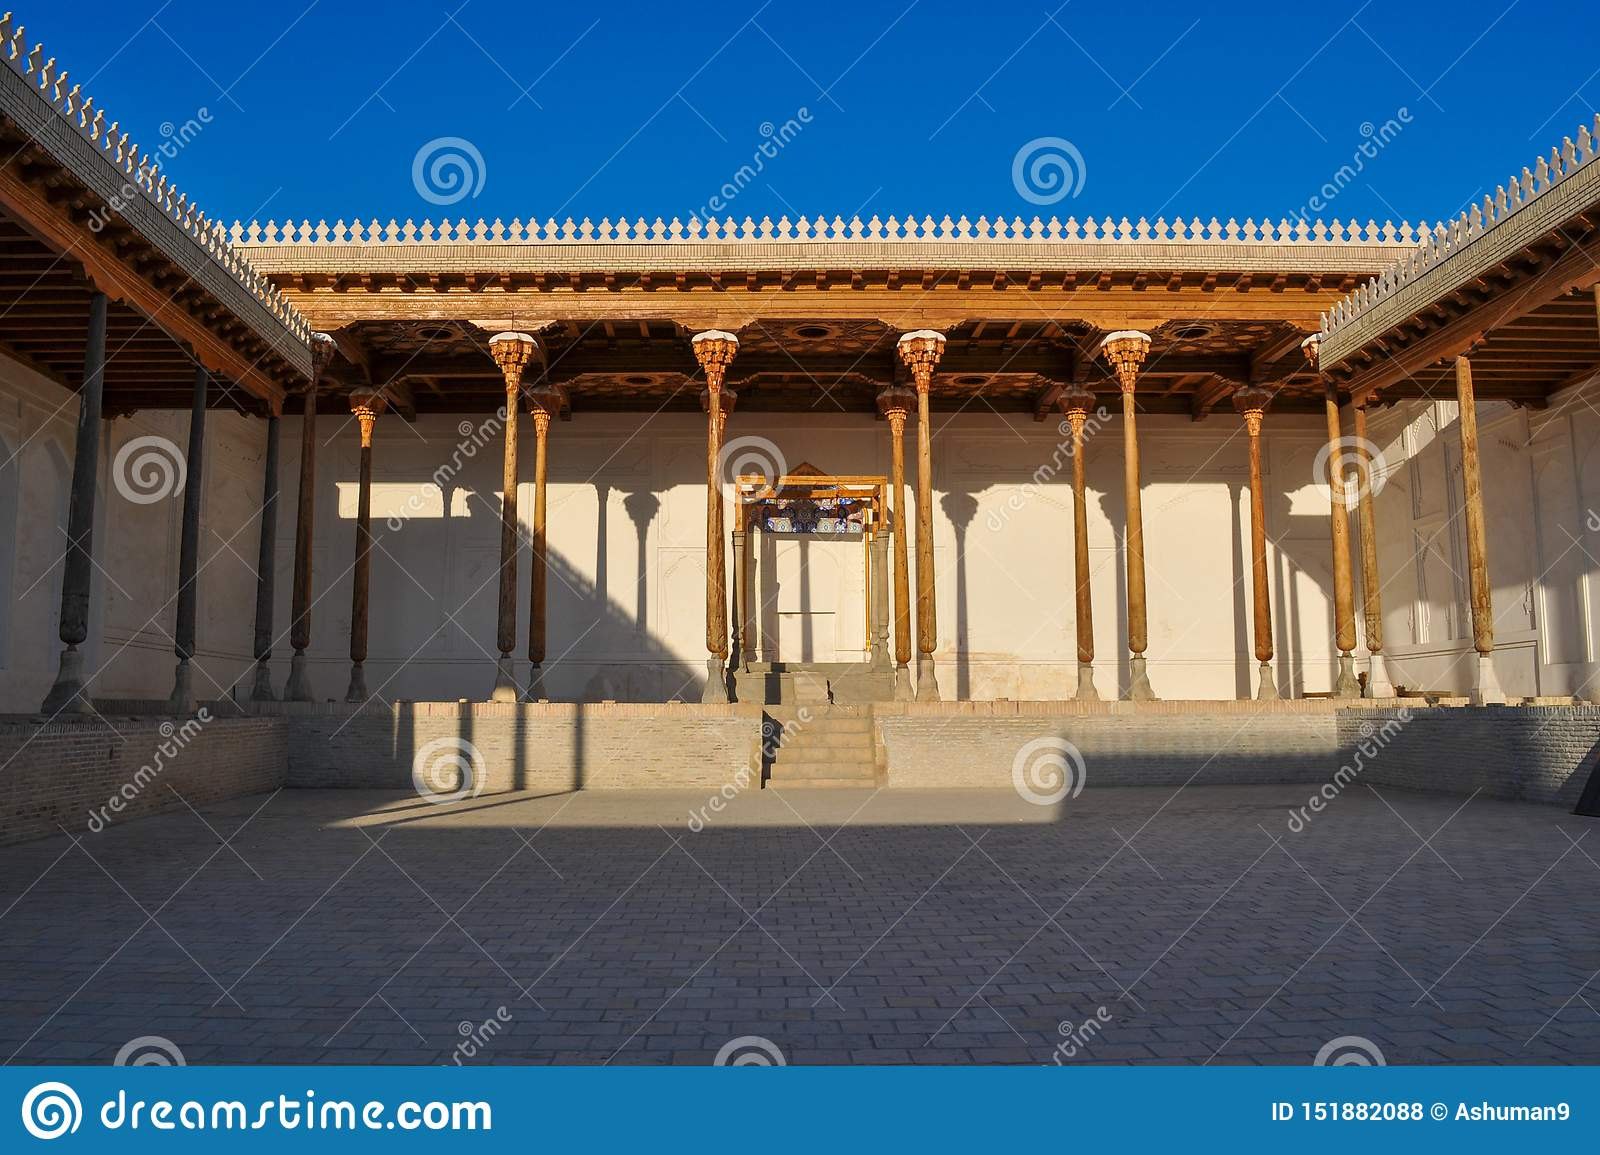 Hall with wooden columns of the ancient citadel in Bukhara `Ark citadel`.